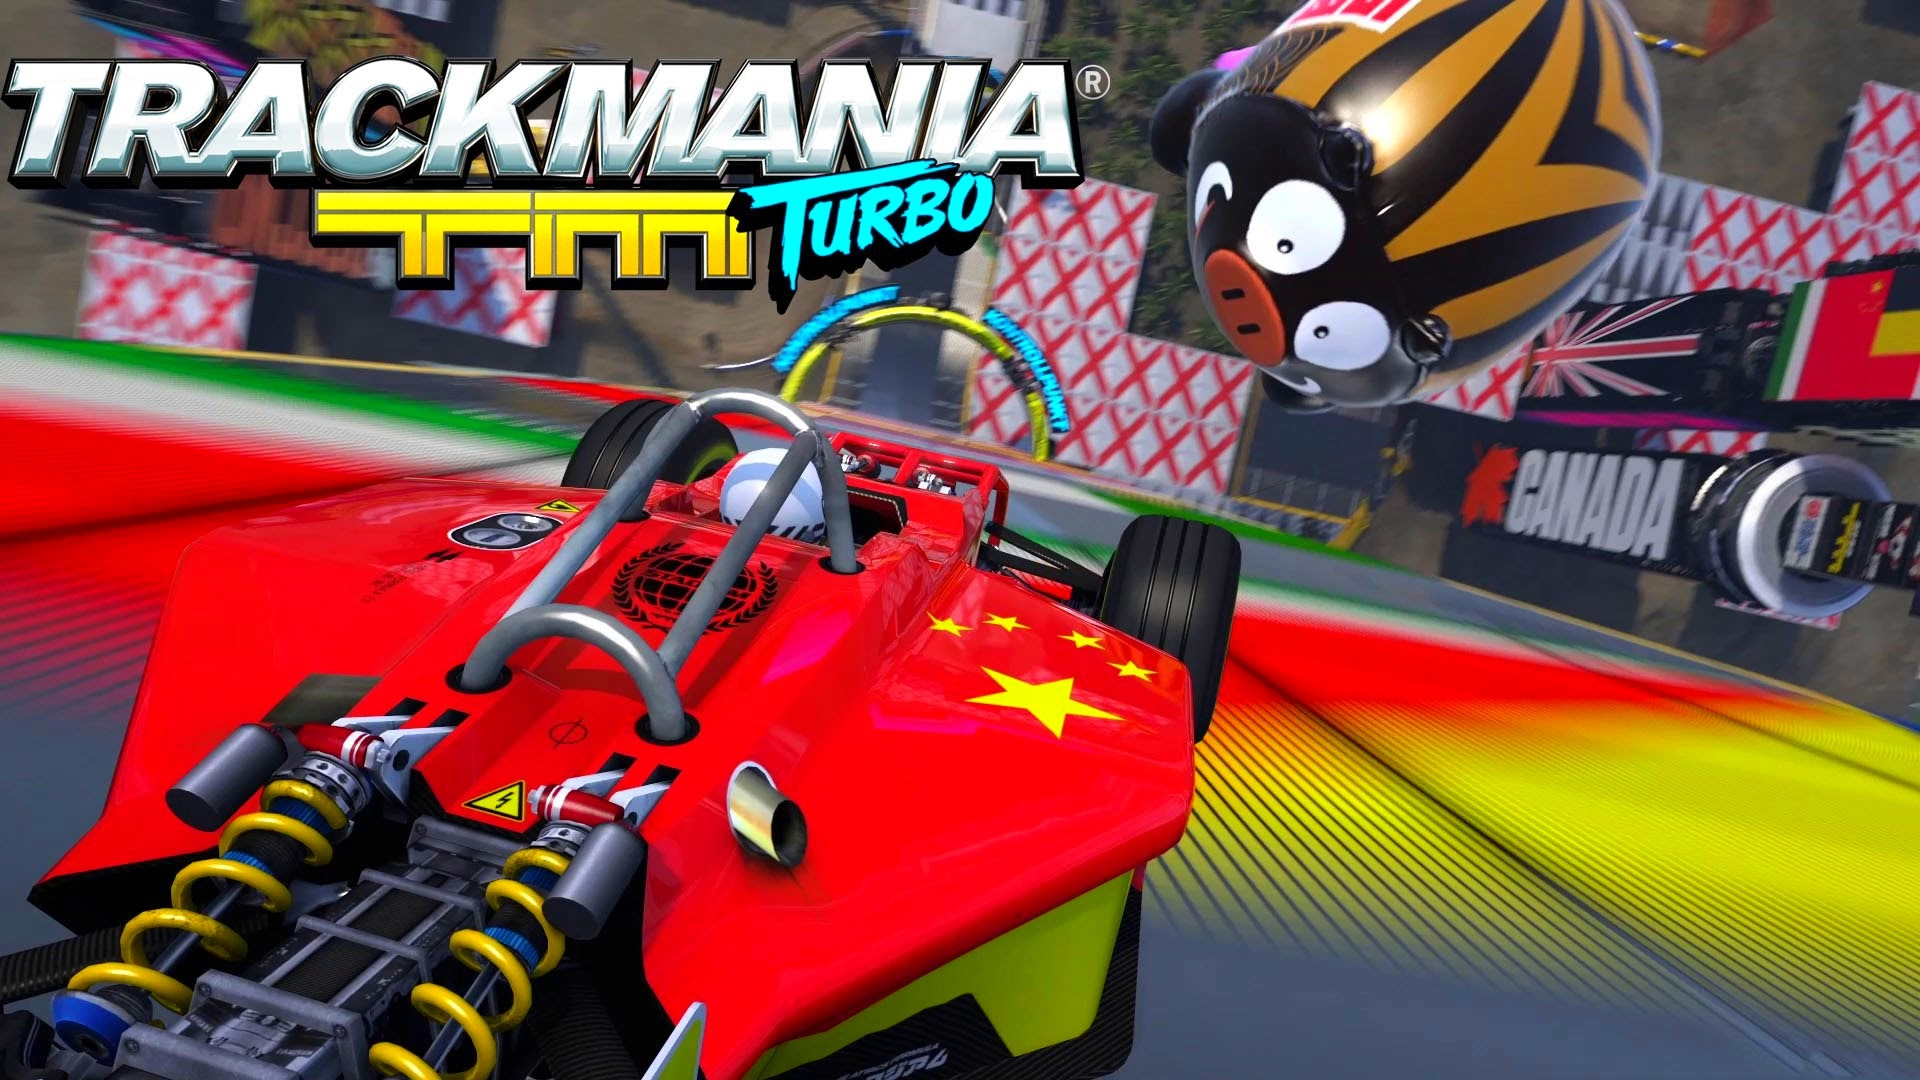 Trackmania Turbo Wallpaper in 1920x1080